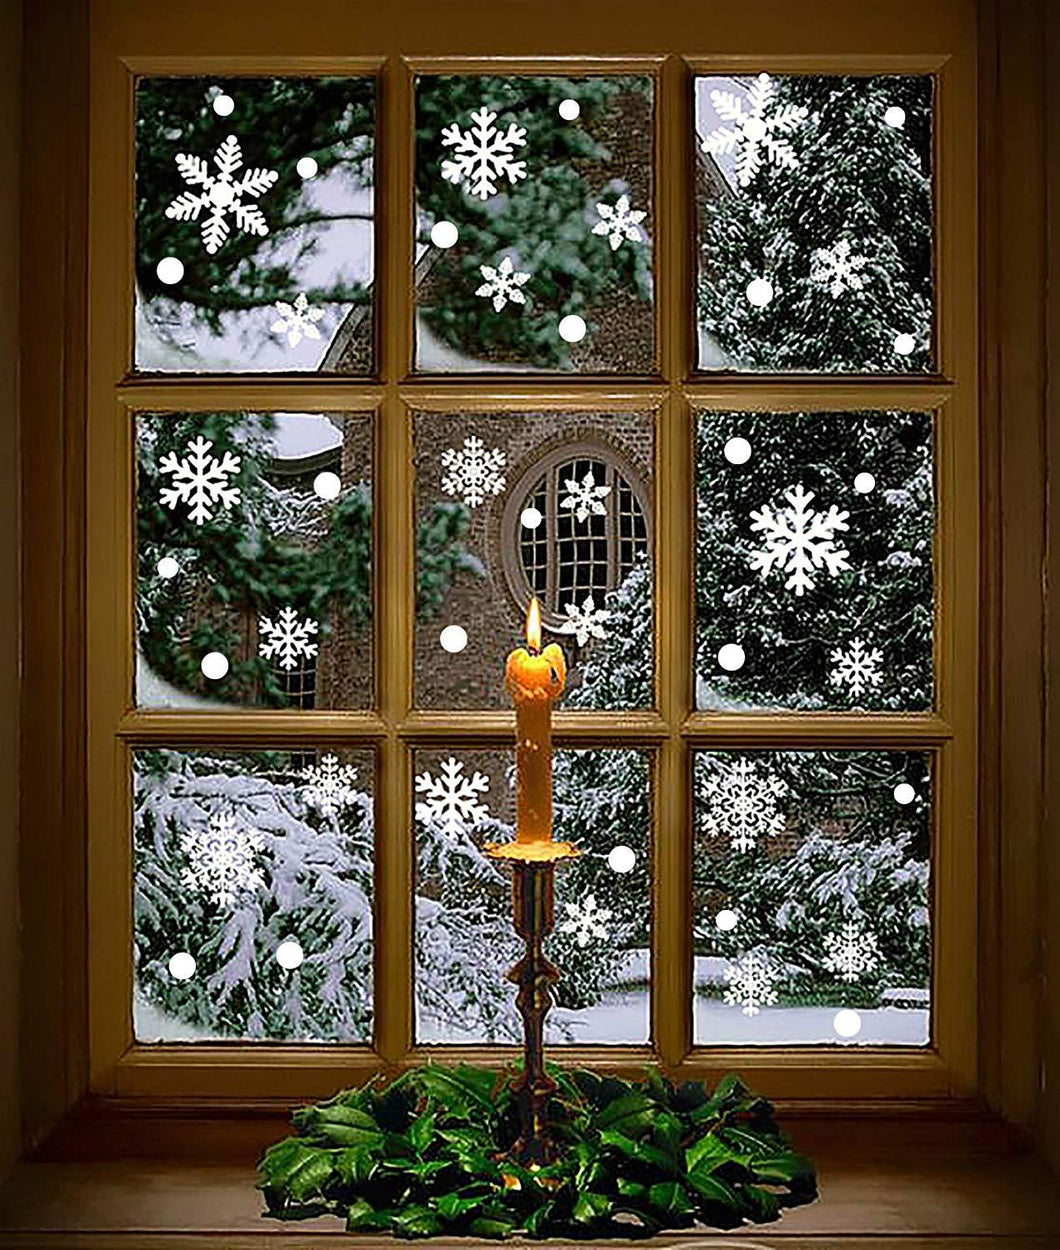 Moon Boat 272PCS Christmas Snowflakes Window Clings Decals Winter Wonderland Decorations Ornaments Party Supplies (7 Sheets) - zingydecor